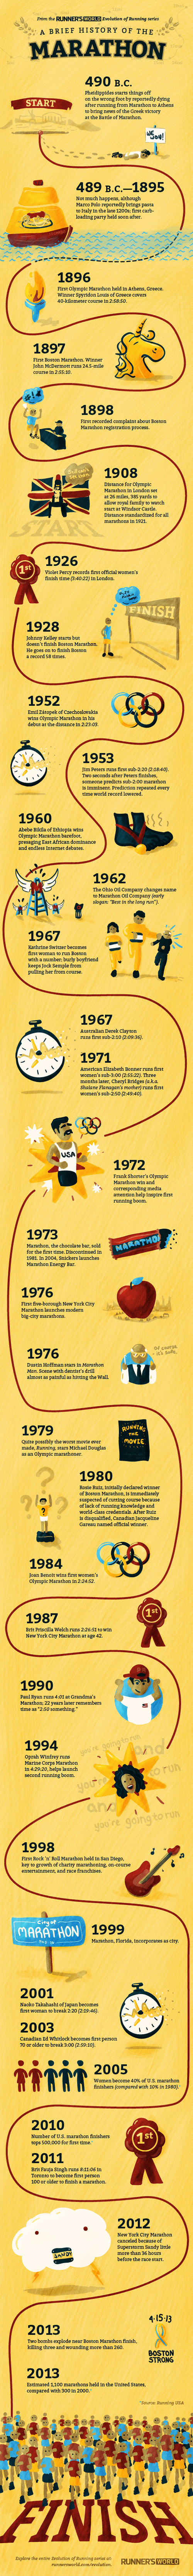 A Brief History of the Marathon